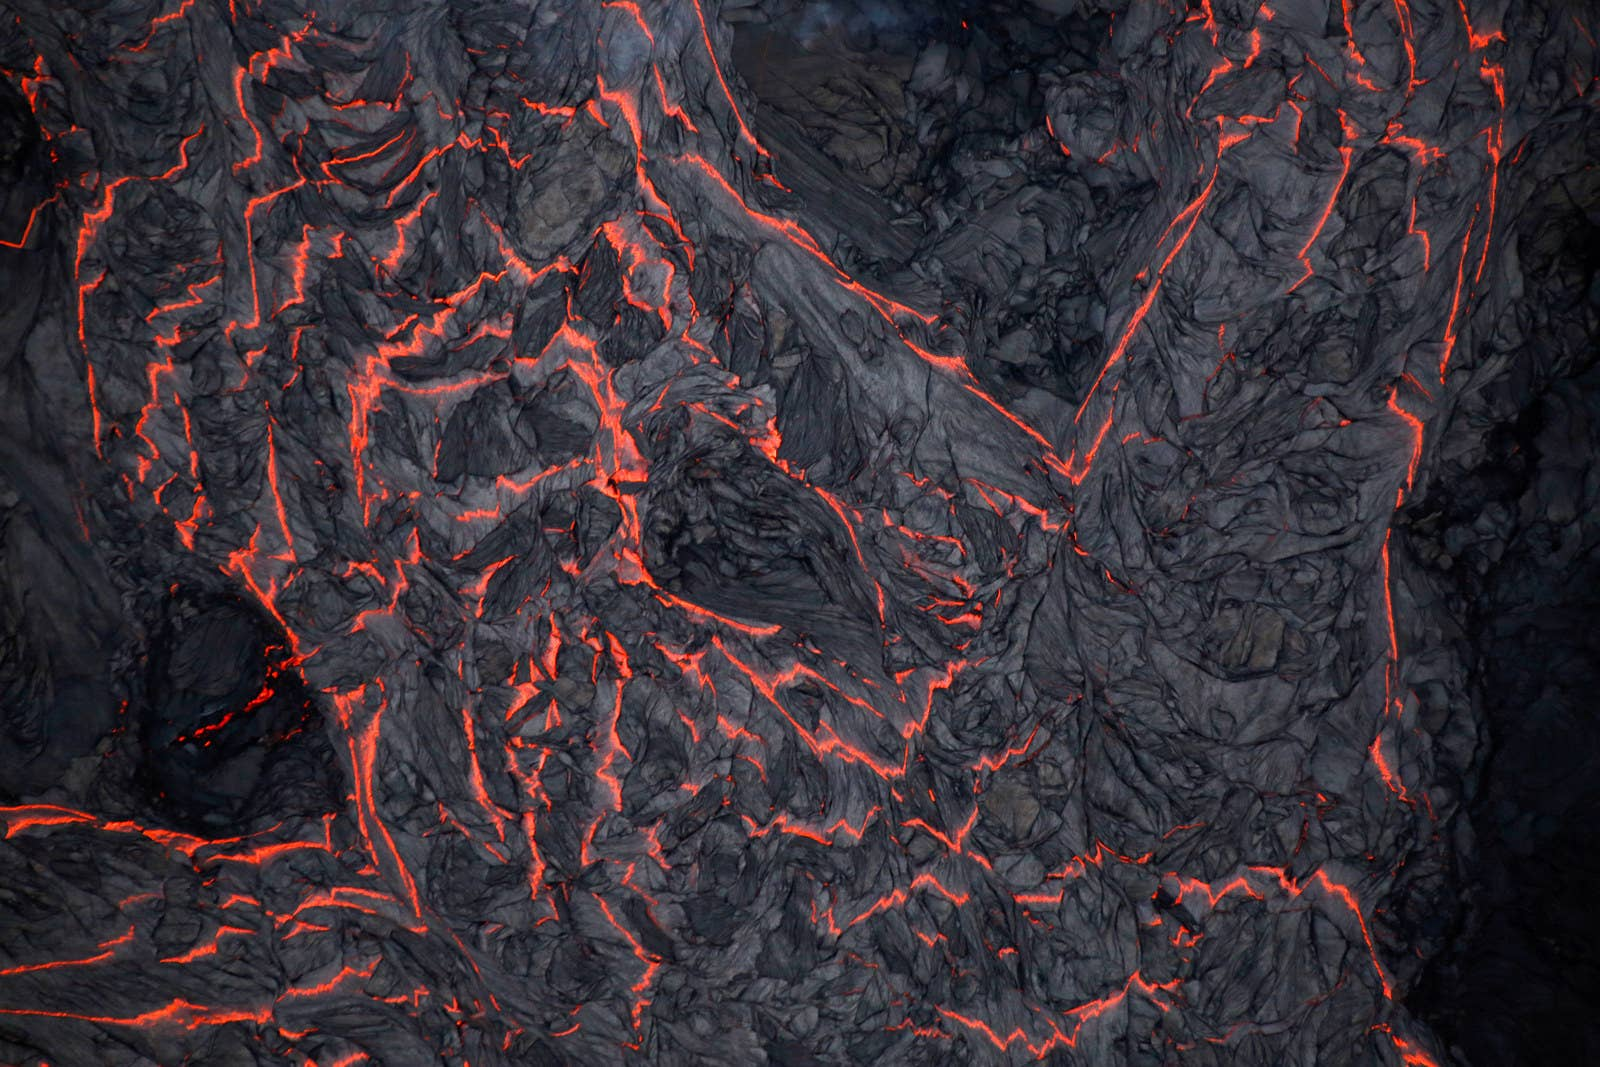 An aerial view of a river of lava, with some of it hardening on top.